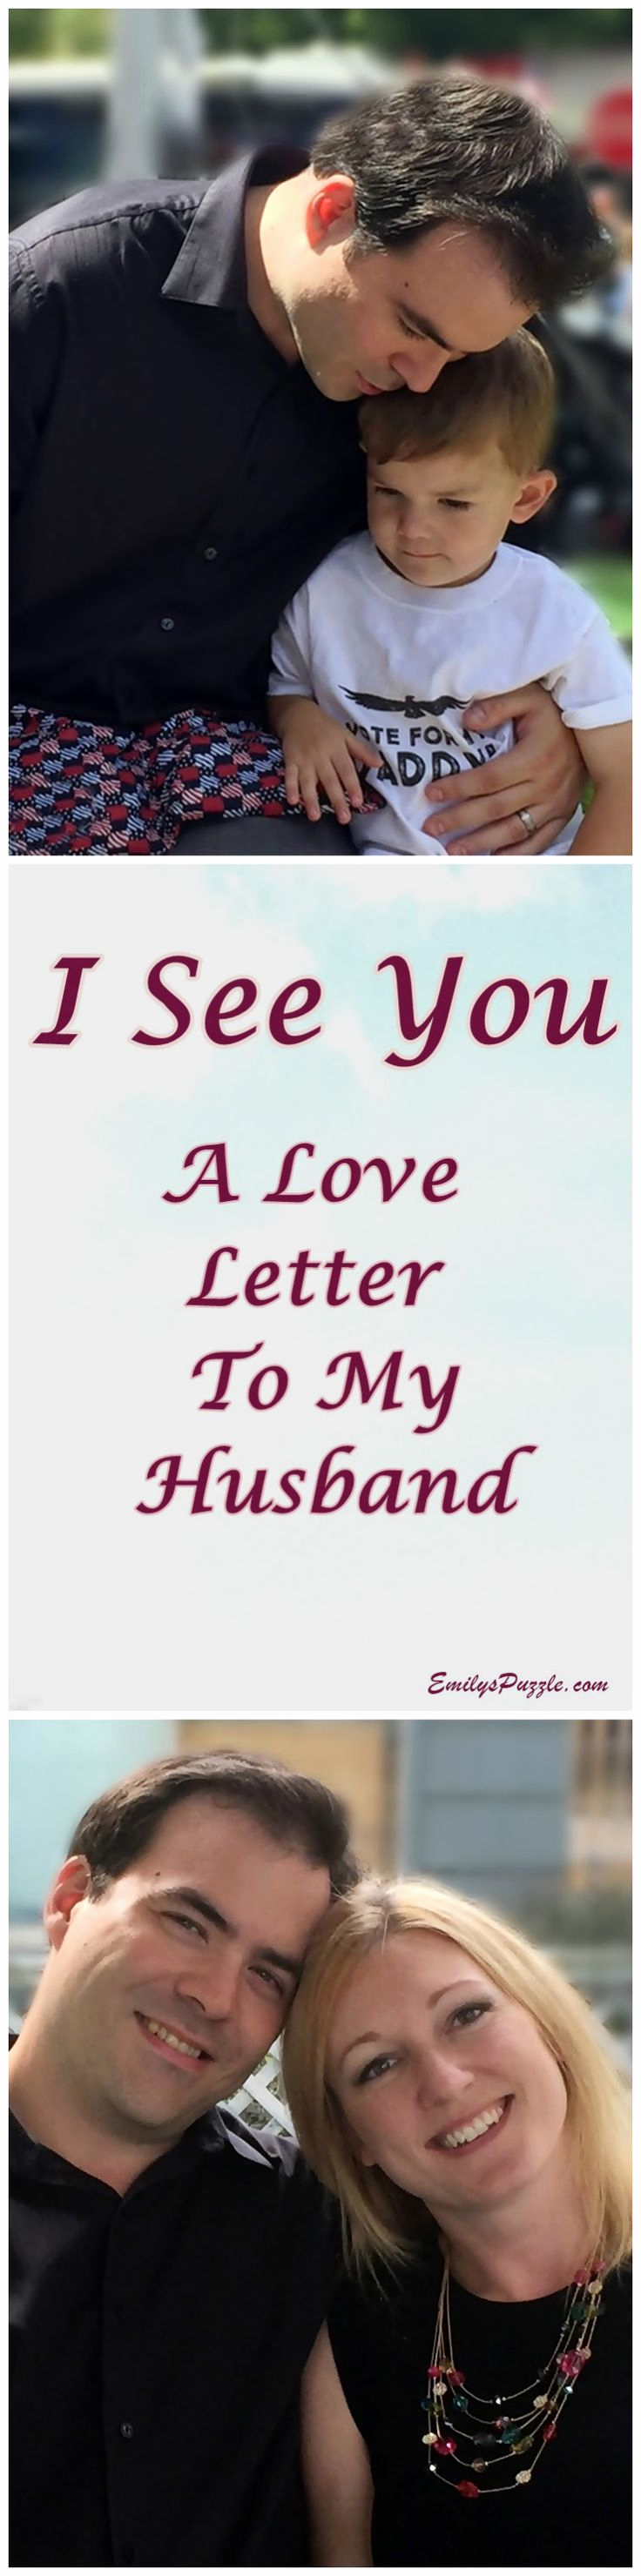 Love Letter to My Husband Awesome I See You A Love Letter to My Husband